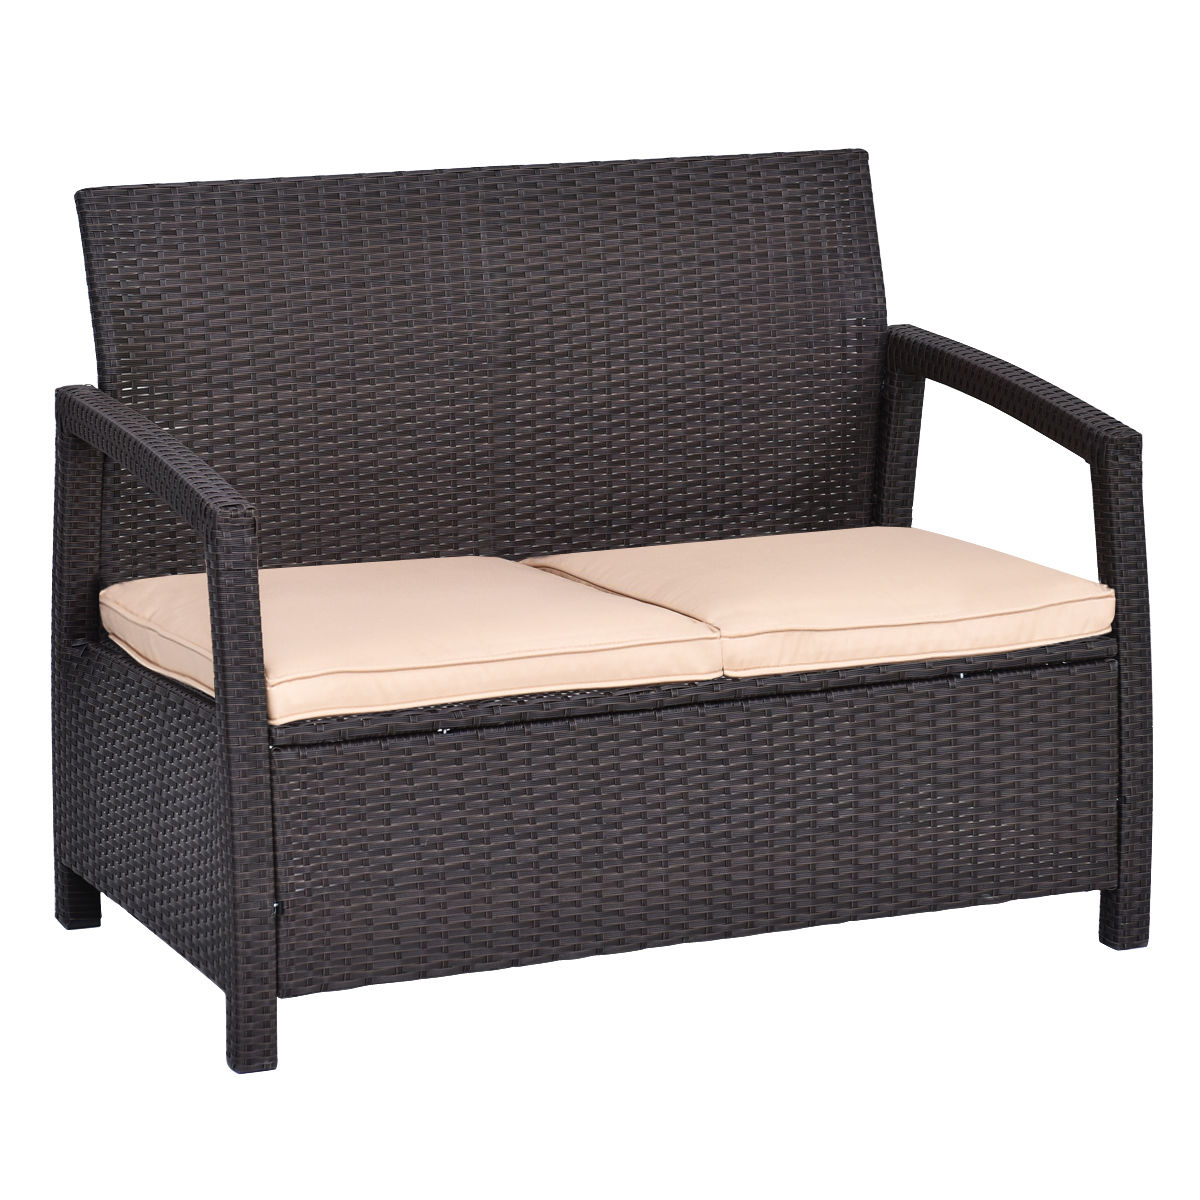 Outdoor Rattan Loveseat Bench Couch Chair With Cushions Patio Furniture Brown by Goplus